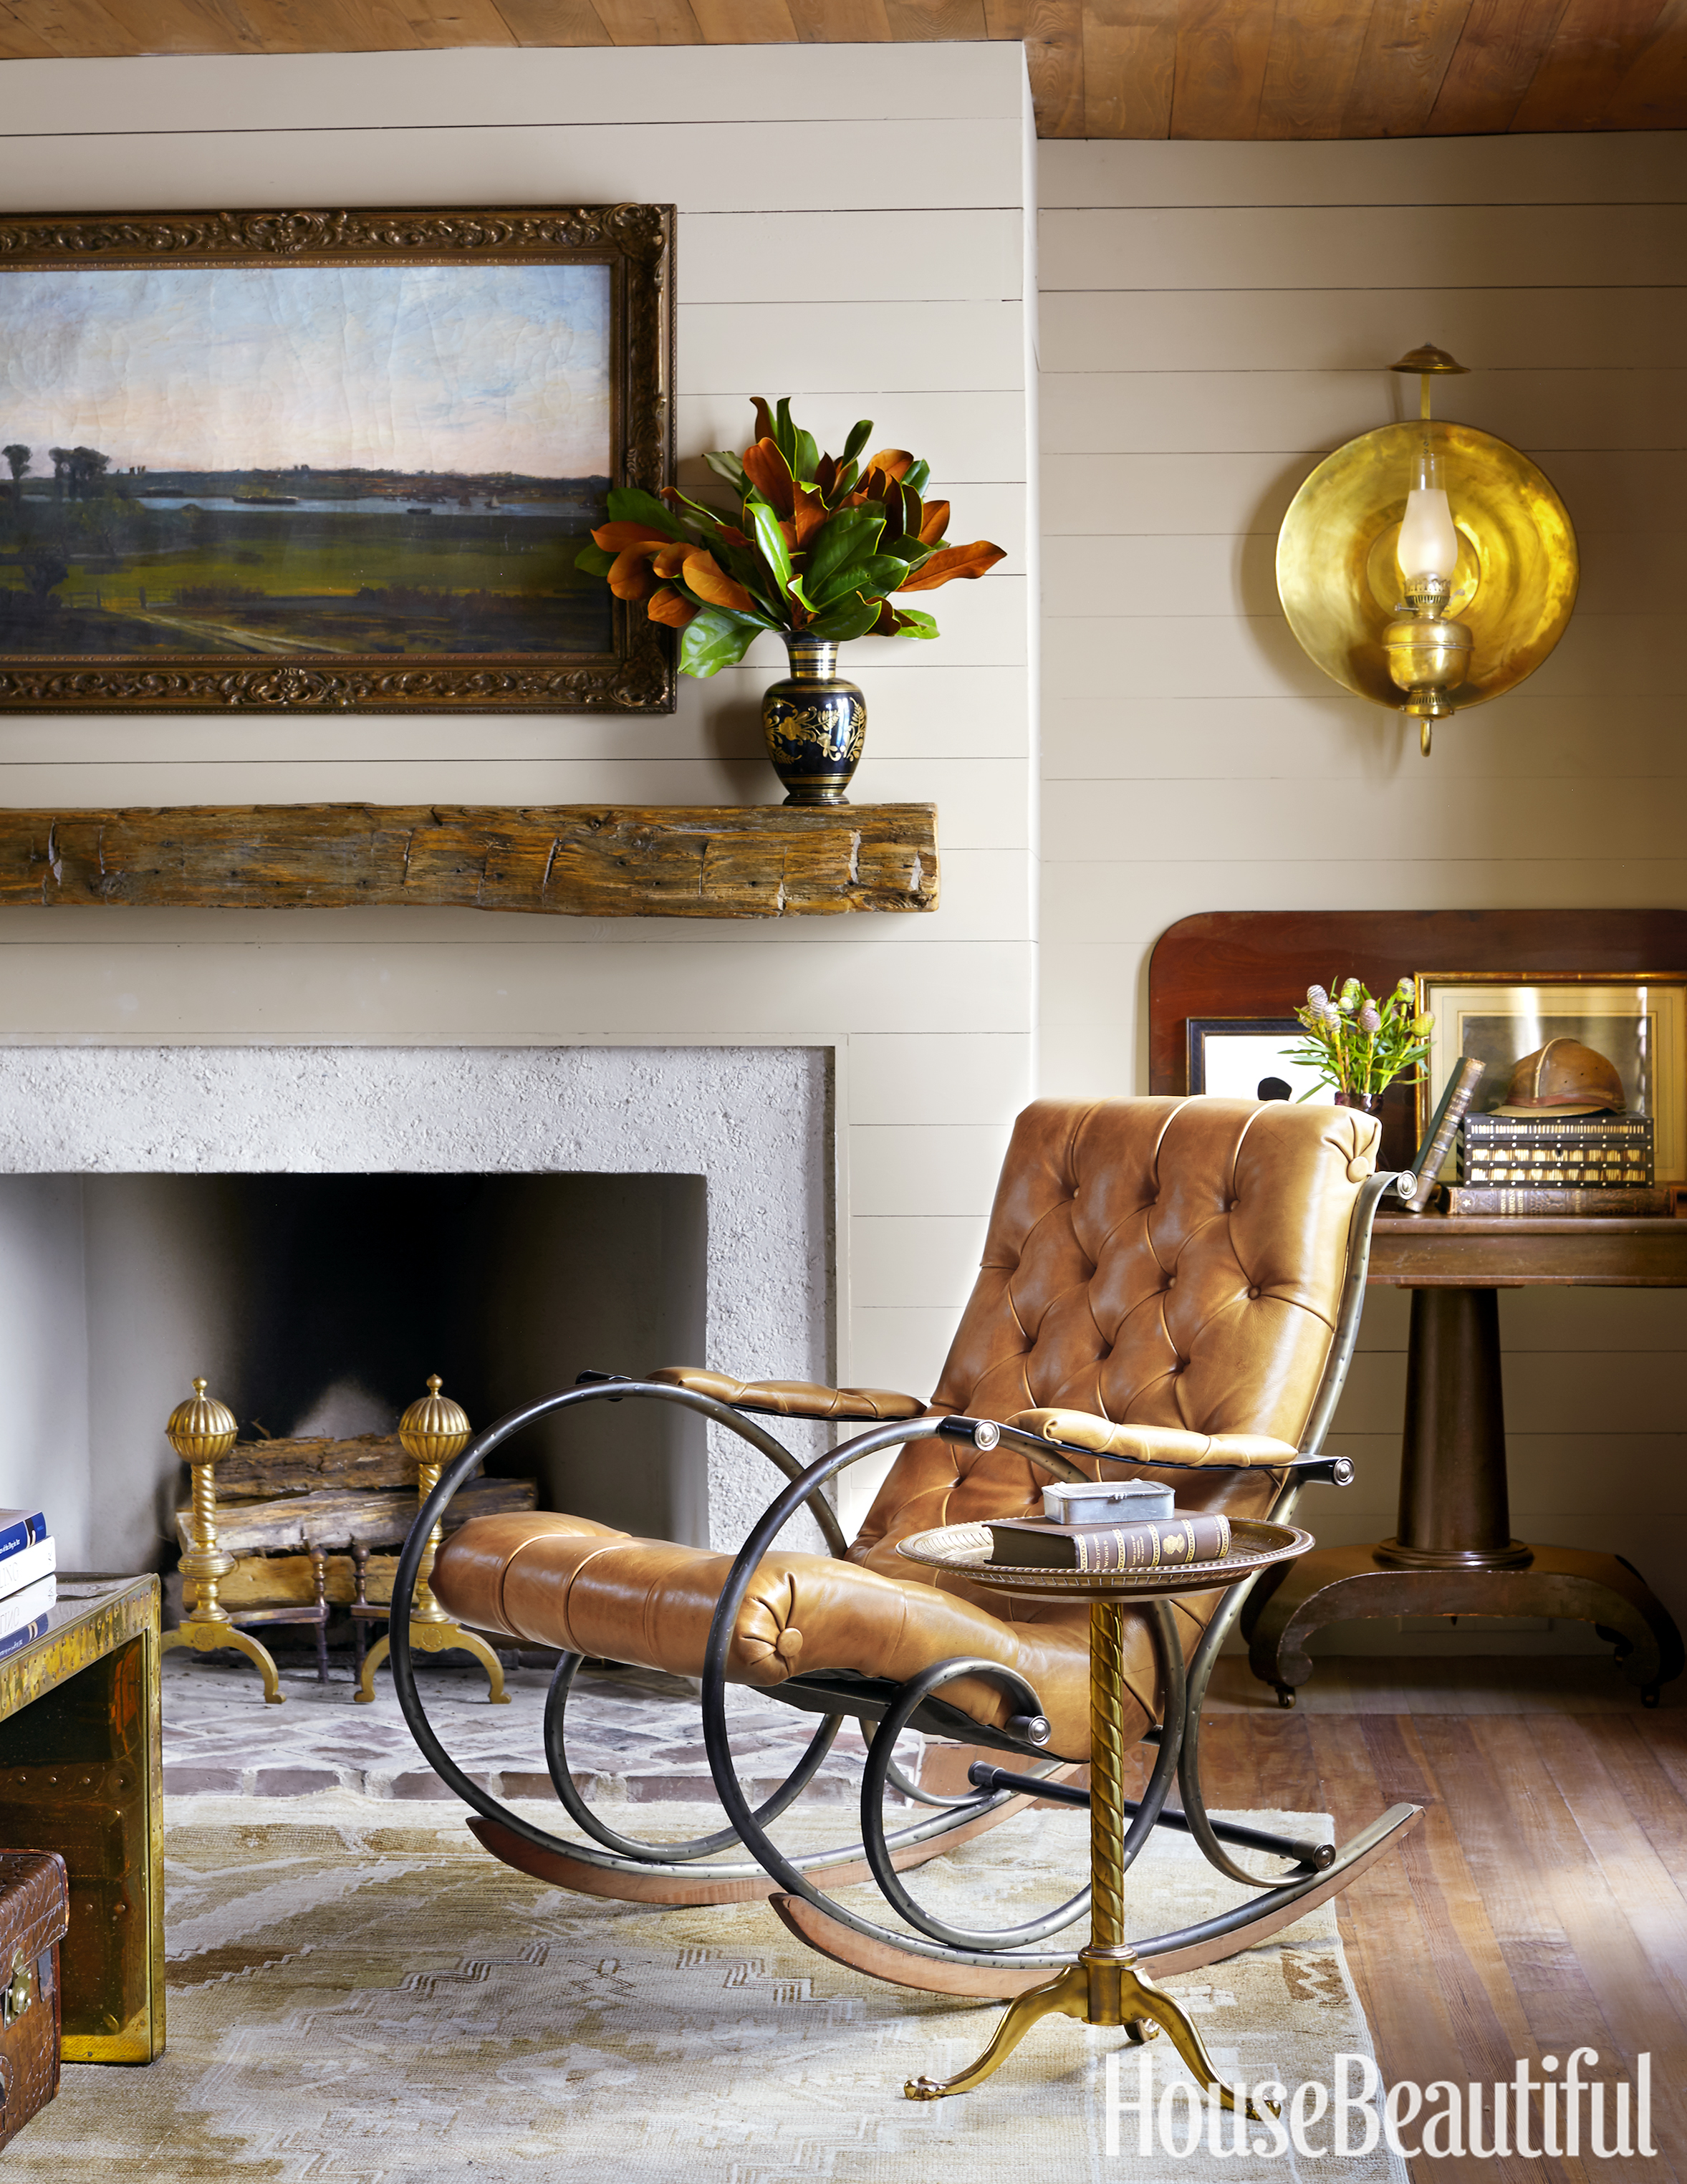 30 Beautiful And Cozy Fall Dining Room Décor Ideas: Ideas For Autumn Decorations